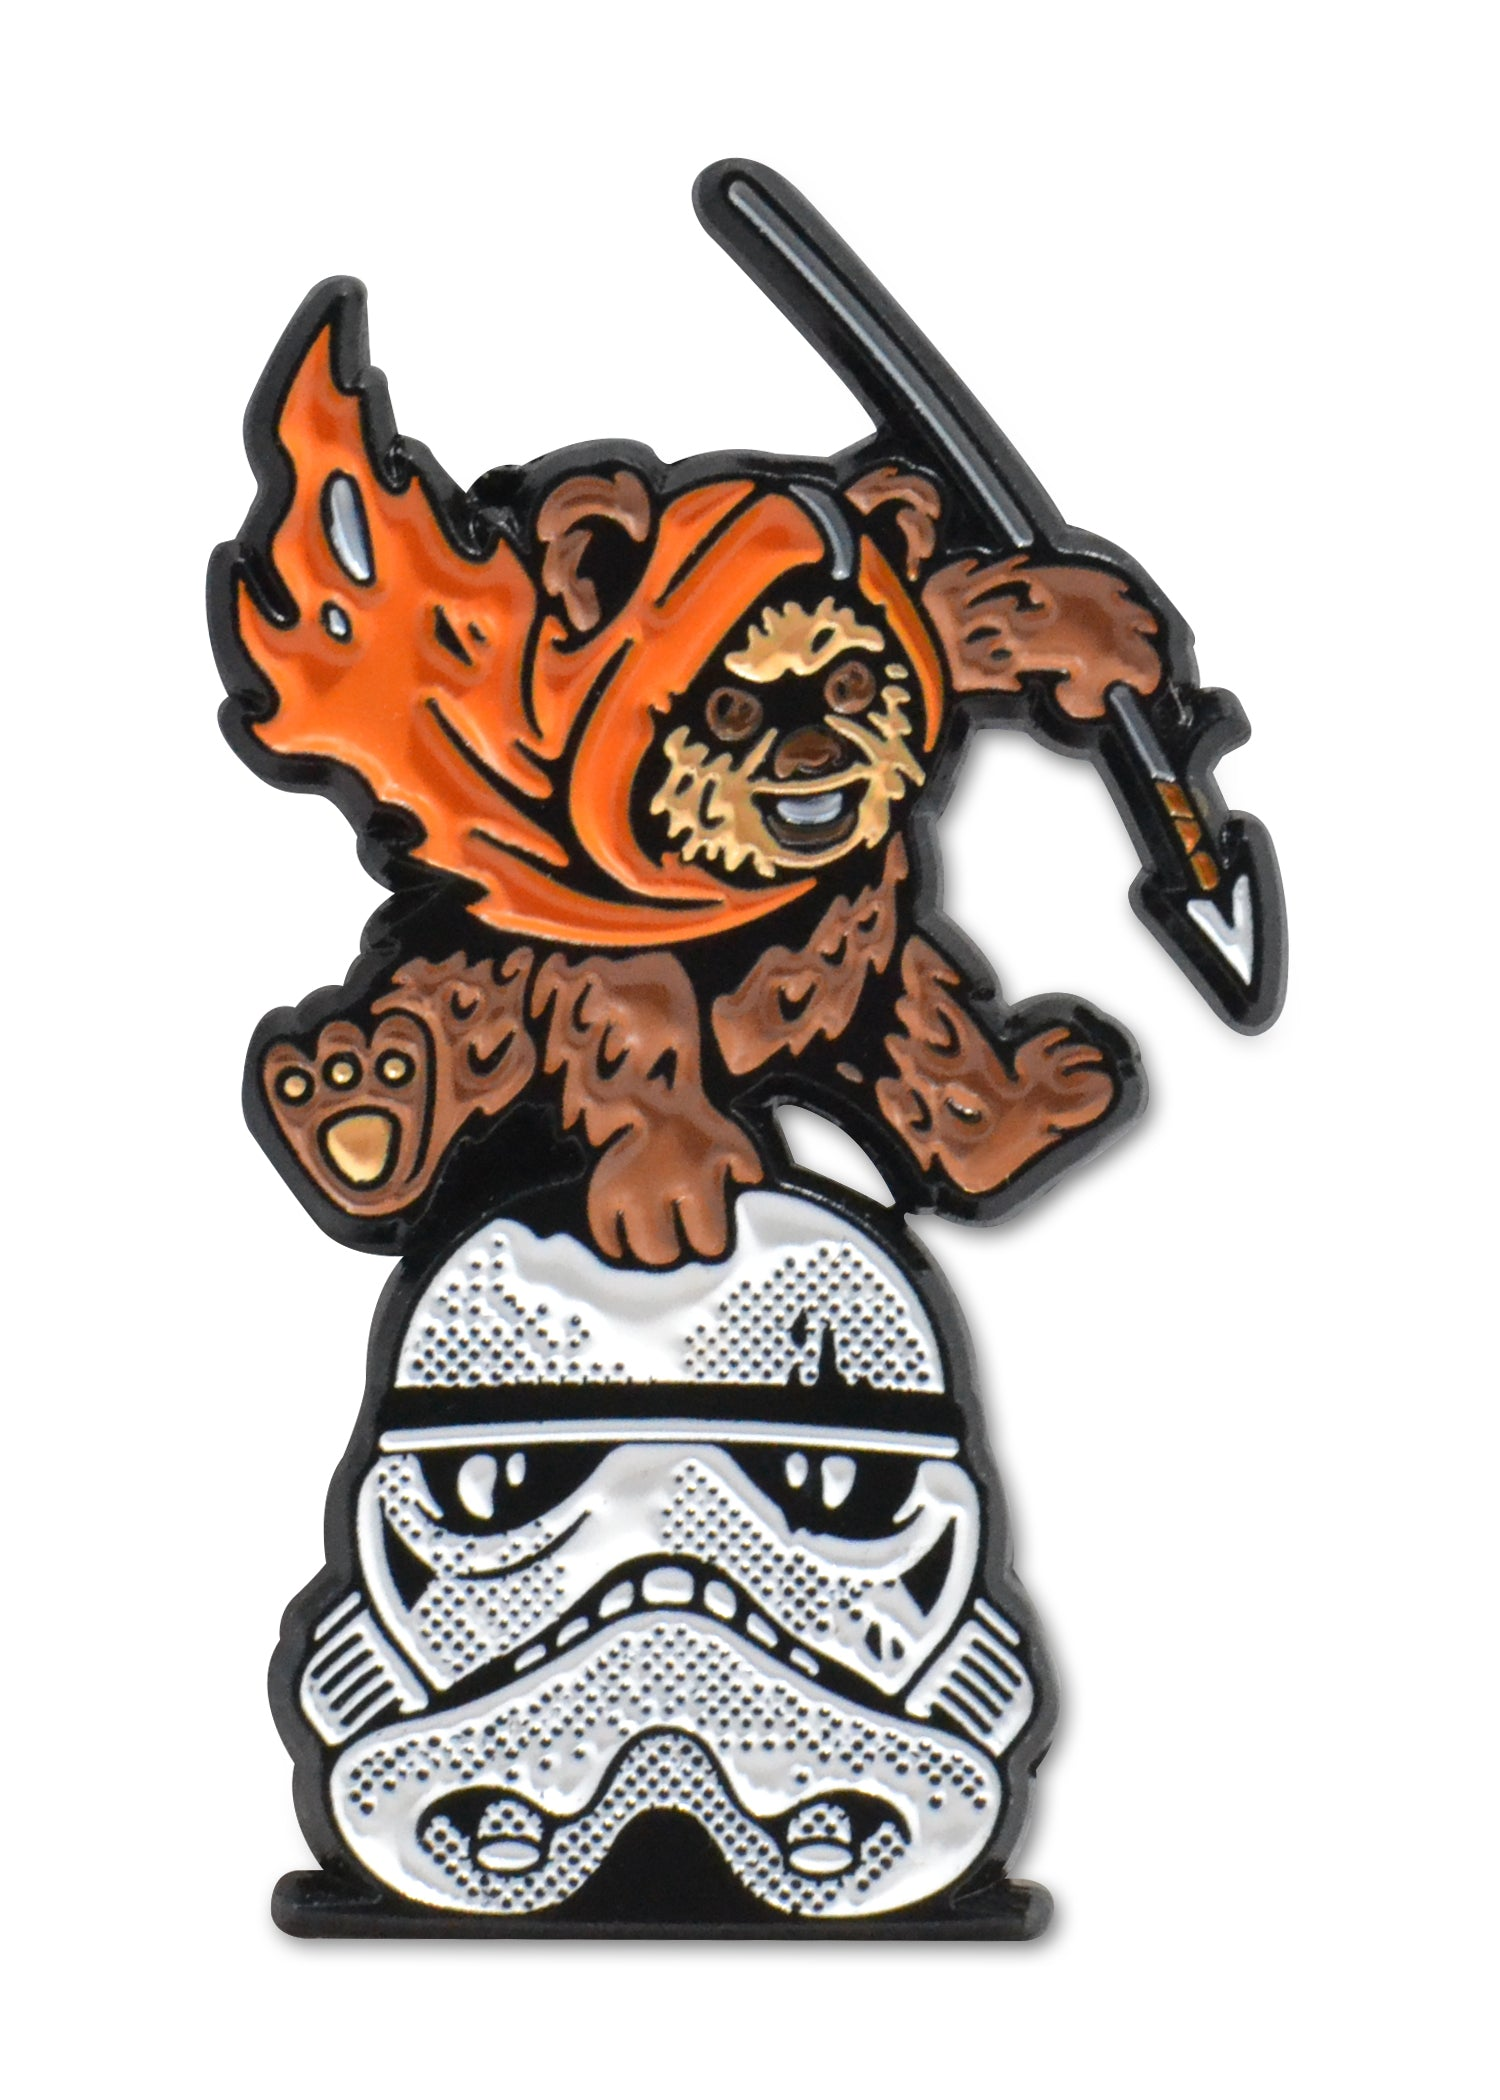 Fall of Endor - Ewok Enamel Pin - 1.5